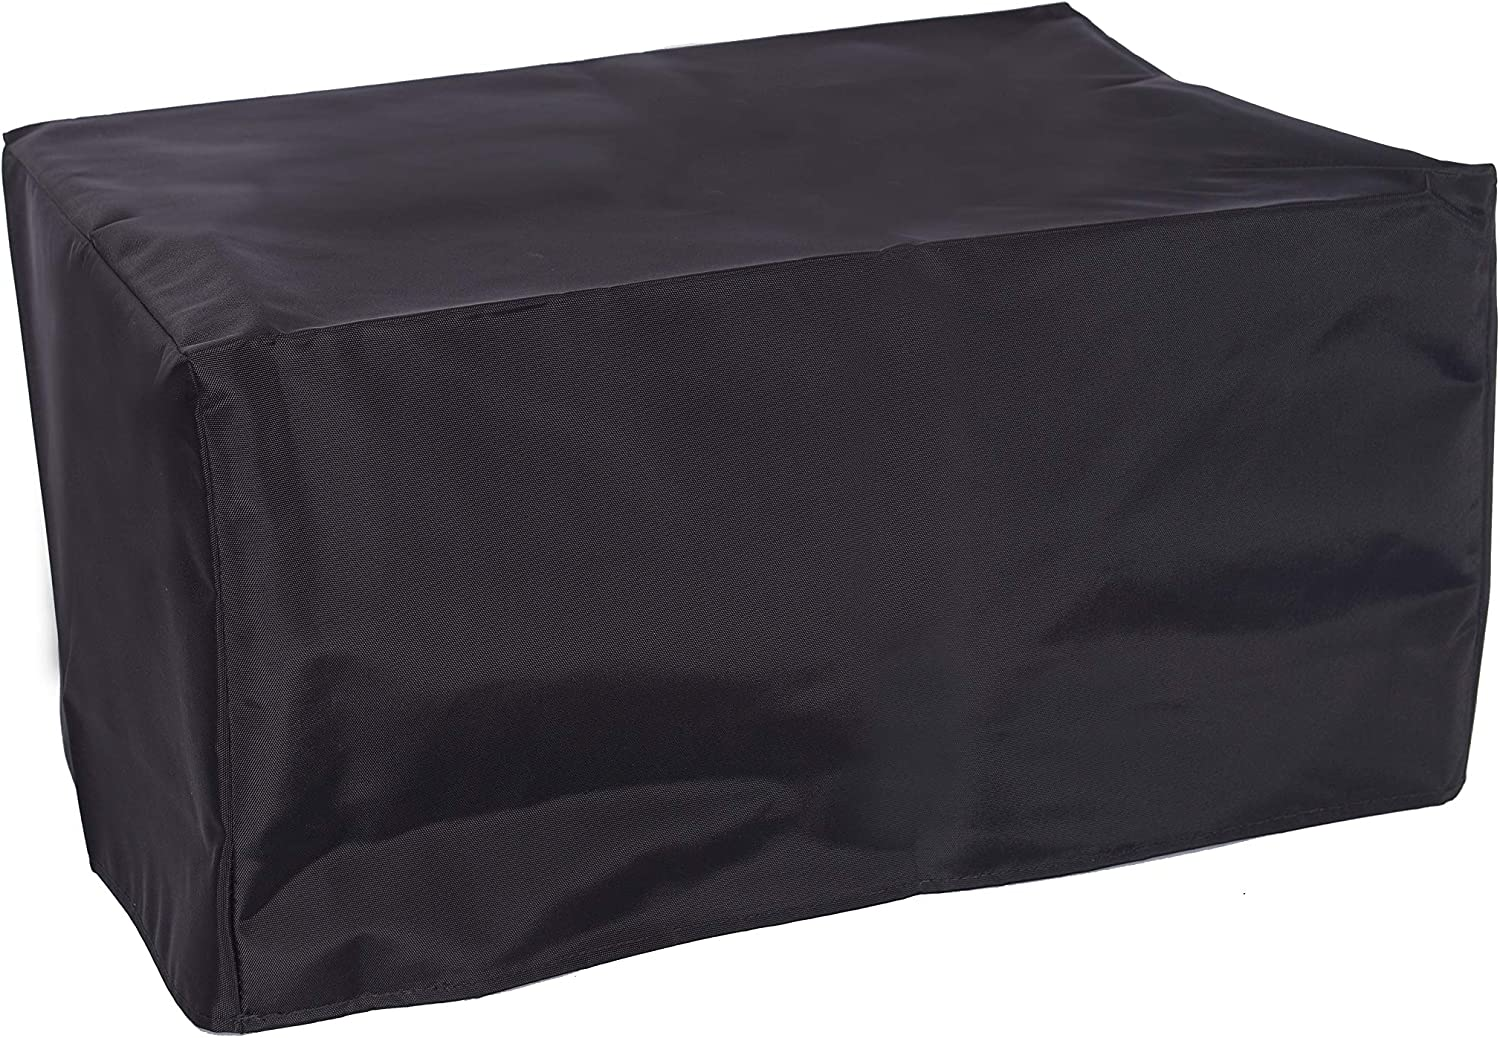 The Perfect Dust Cover, Anti Static Cover for HP OfficeJet Pro 9010, OfficeJet Pro 9015 and OfficeJet Pro 9018 All-in-One Wireless Printers, Black Nylon Cover by The Perfect Dust Cover